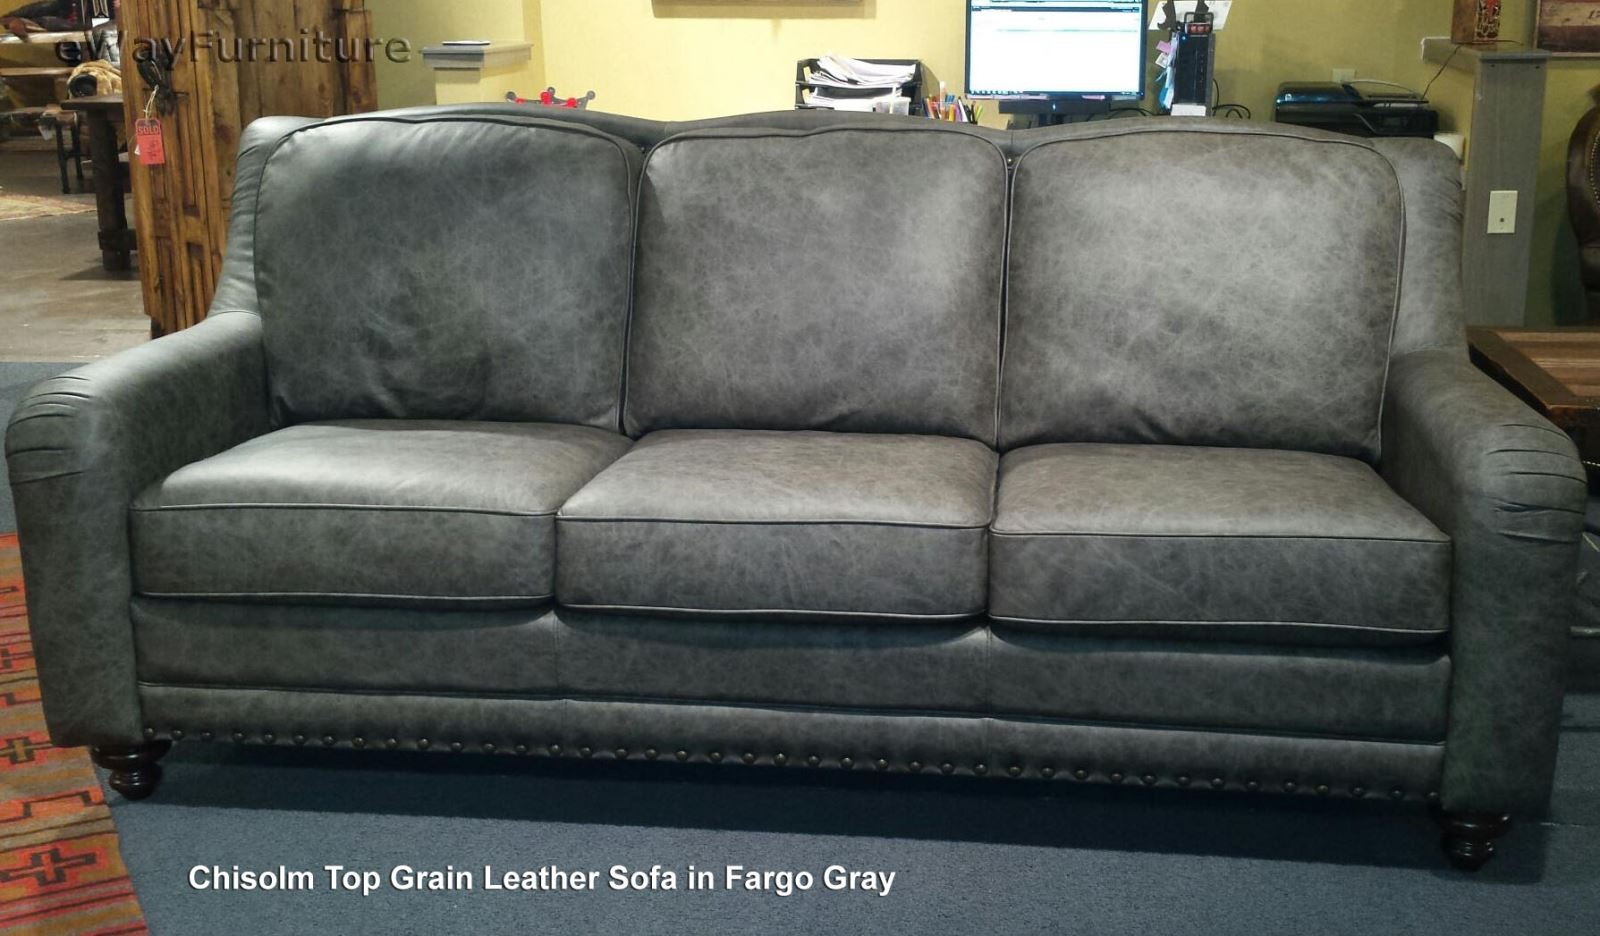 best sofas made in the usa one sofa and two chairs chisolm top grain leather fargo gray